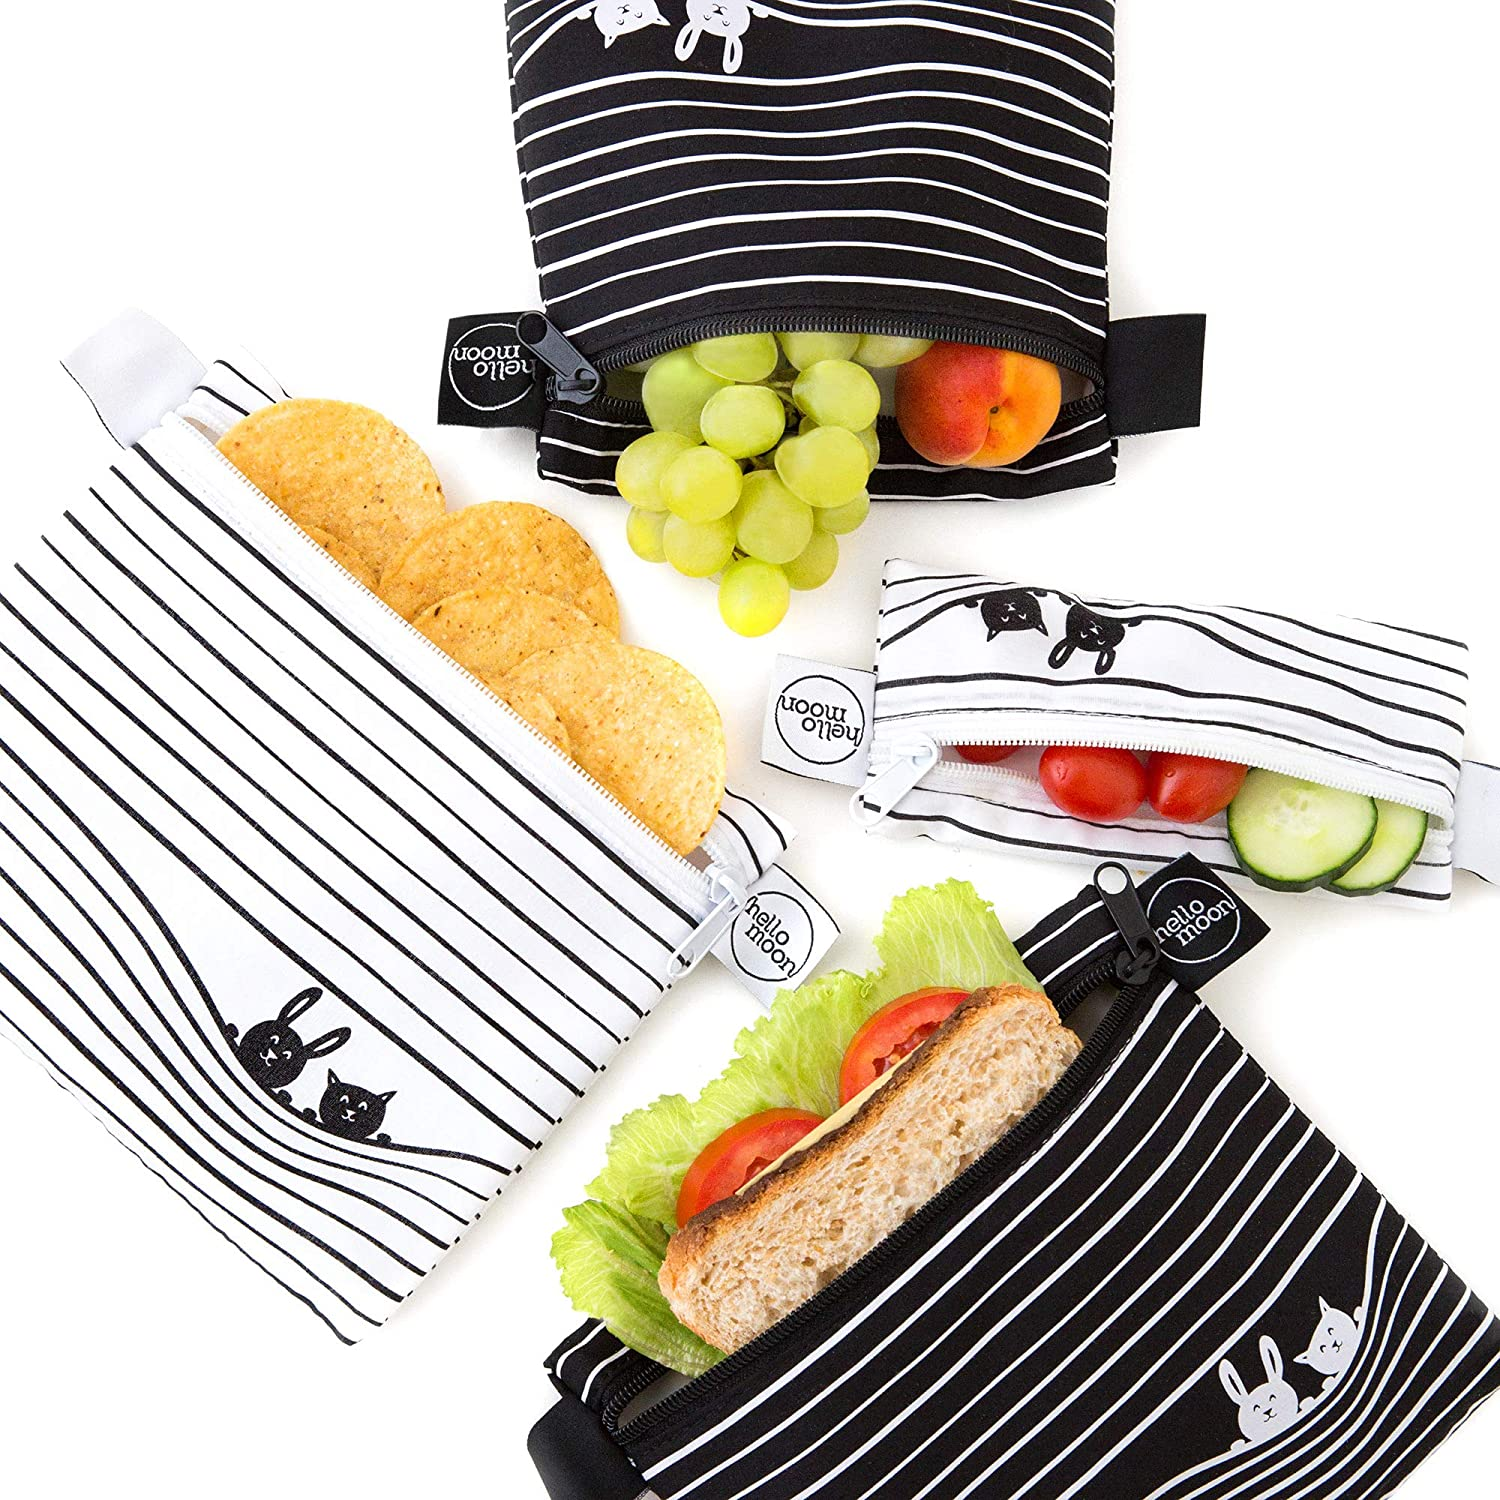 Eco-Friendly Reusable Snack and Sandwich Bags - Zero Waste Dishwasher Safe Lunch Bags Set Includes 2 Large Reusable Sandwich Bags 1 Medium 1 Small Reusable Food Bags | Reusable Bag Set (Magic Lines)